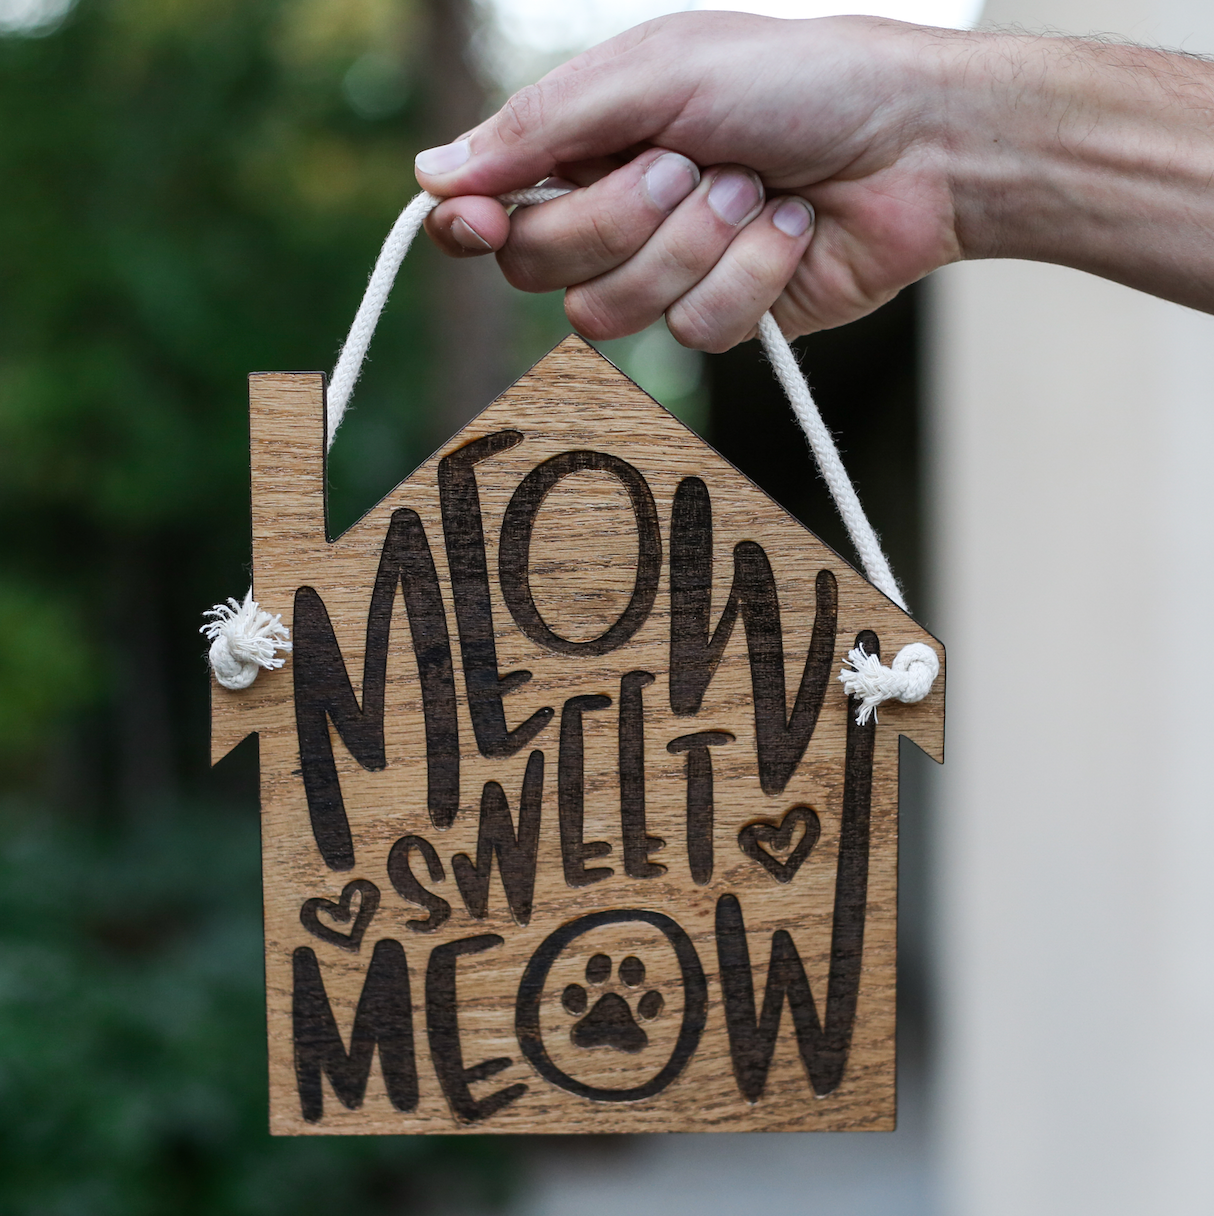 Alt Text: Brindle Market - Meow Sweet Meow Wooden Hanging